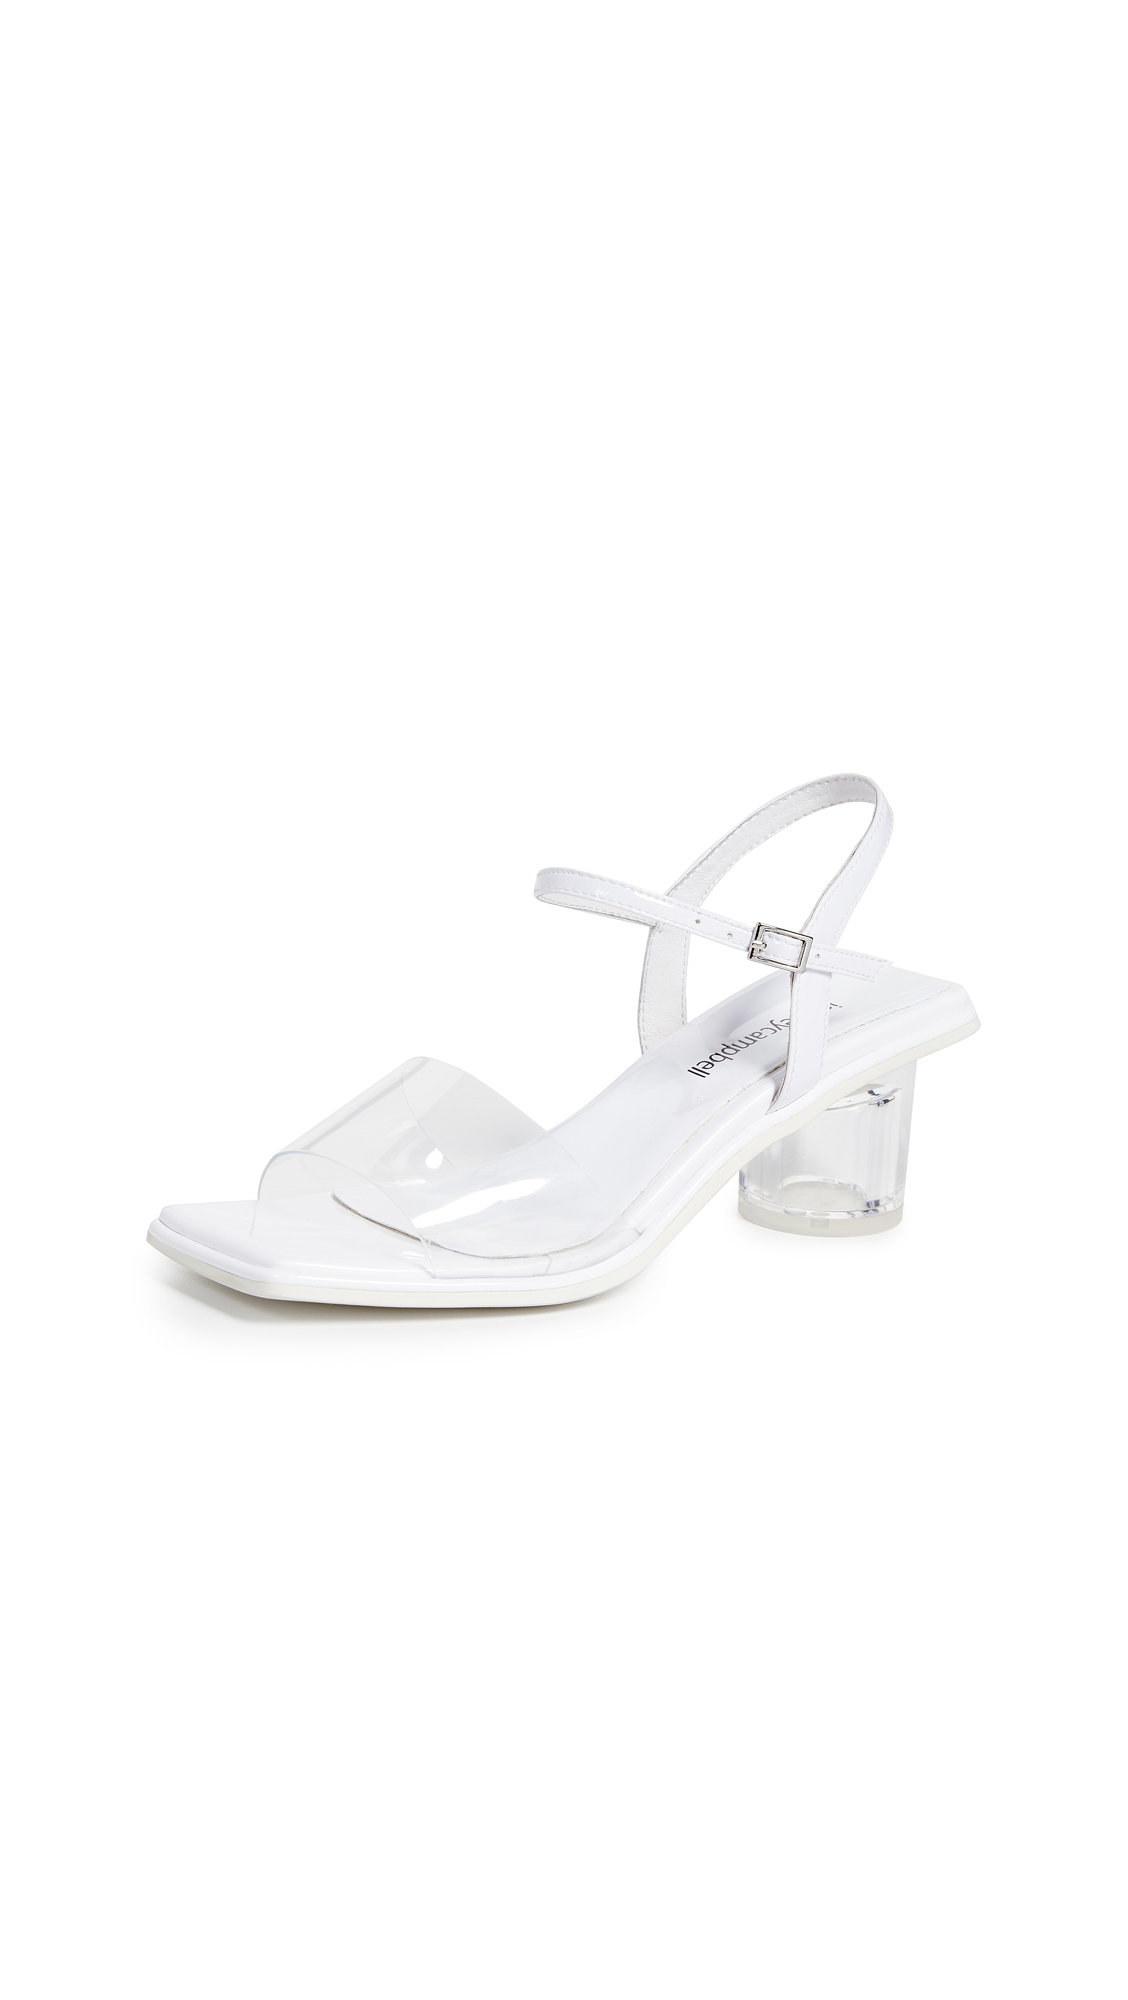 Jeffrey Campbell Futuro Vinyl Sandals - White/Clear